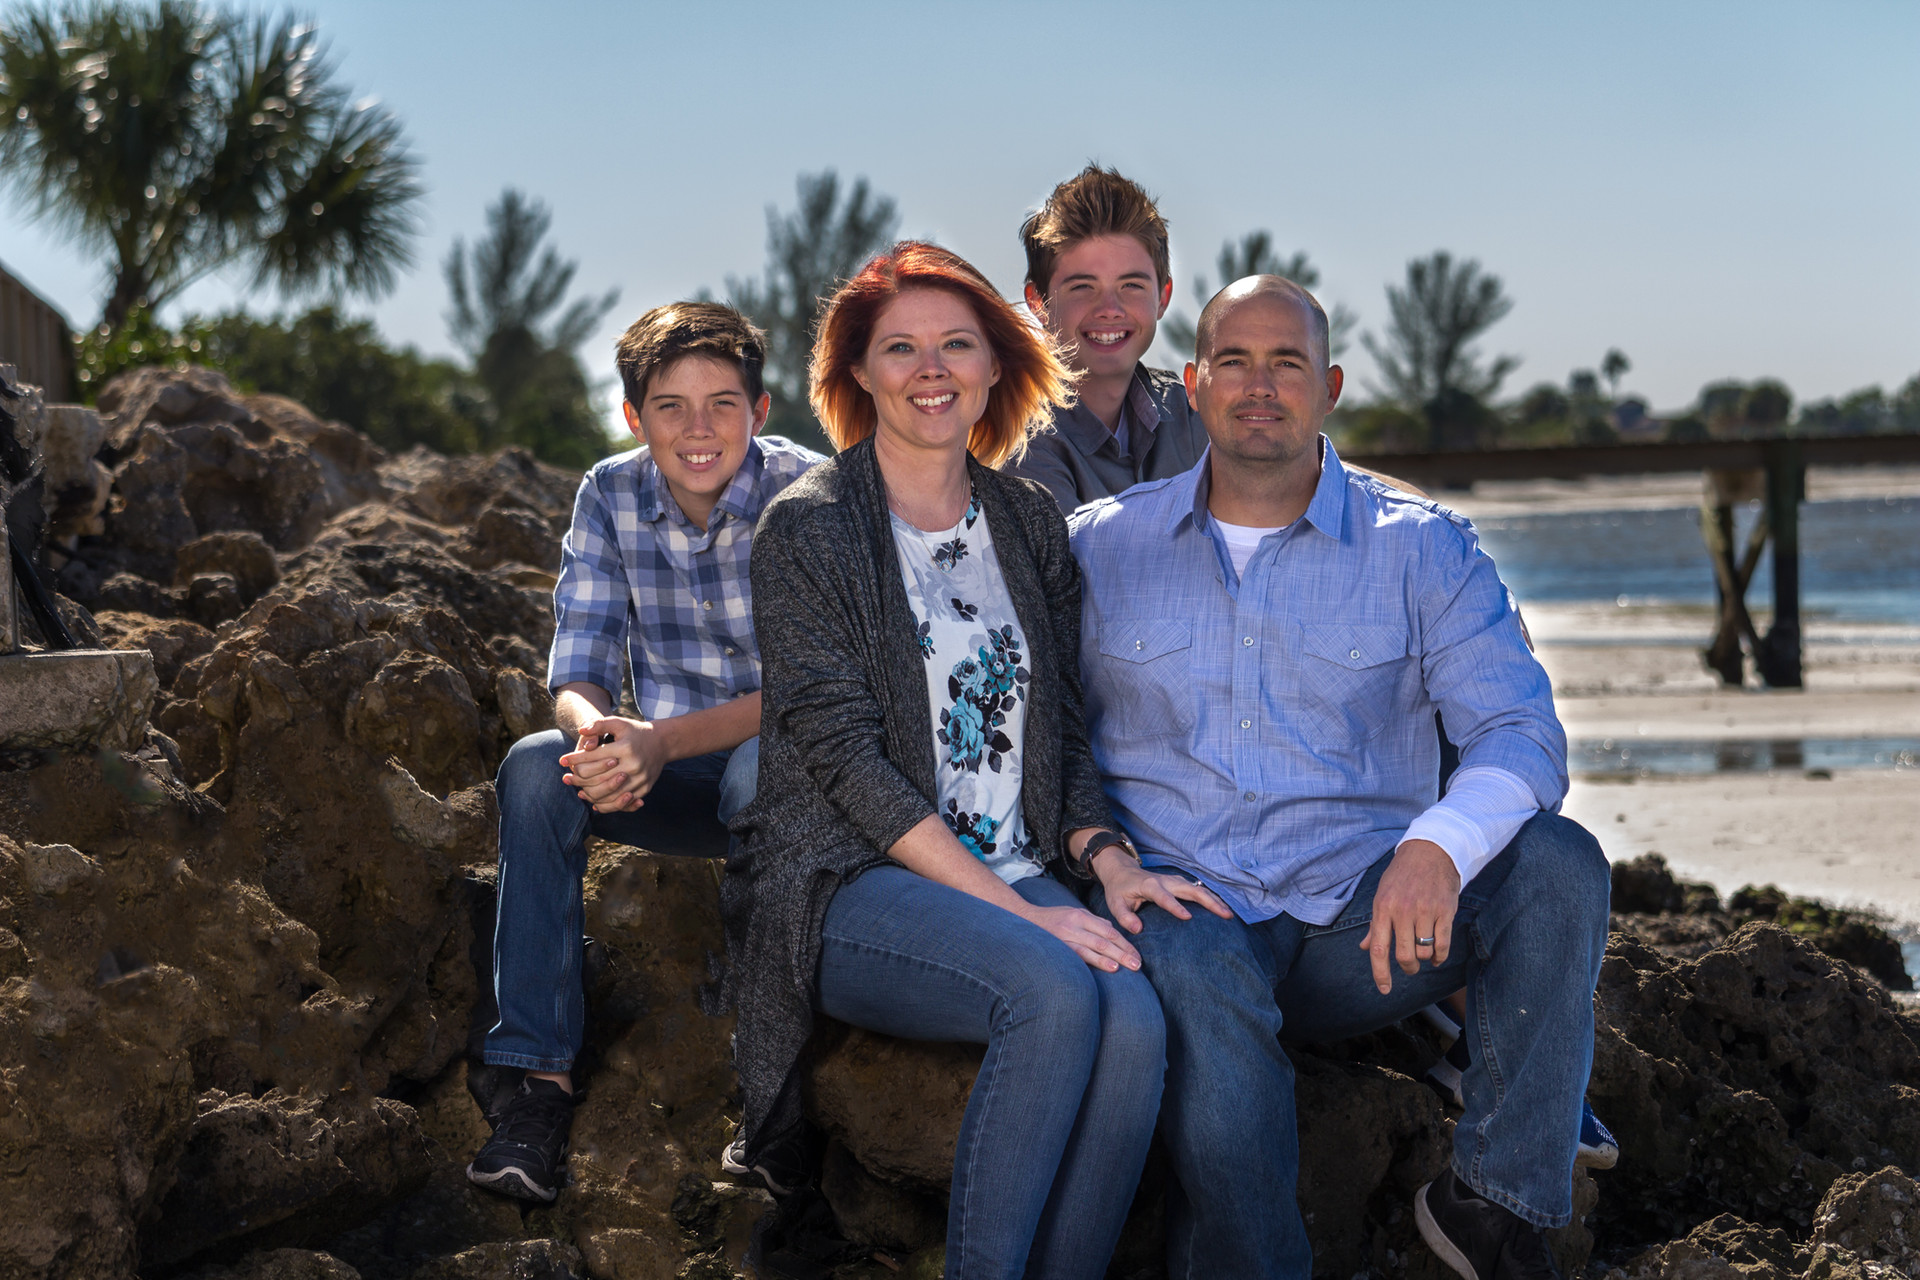 Family photos on rock formation